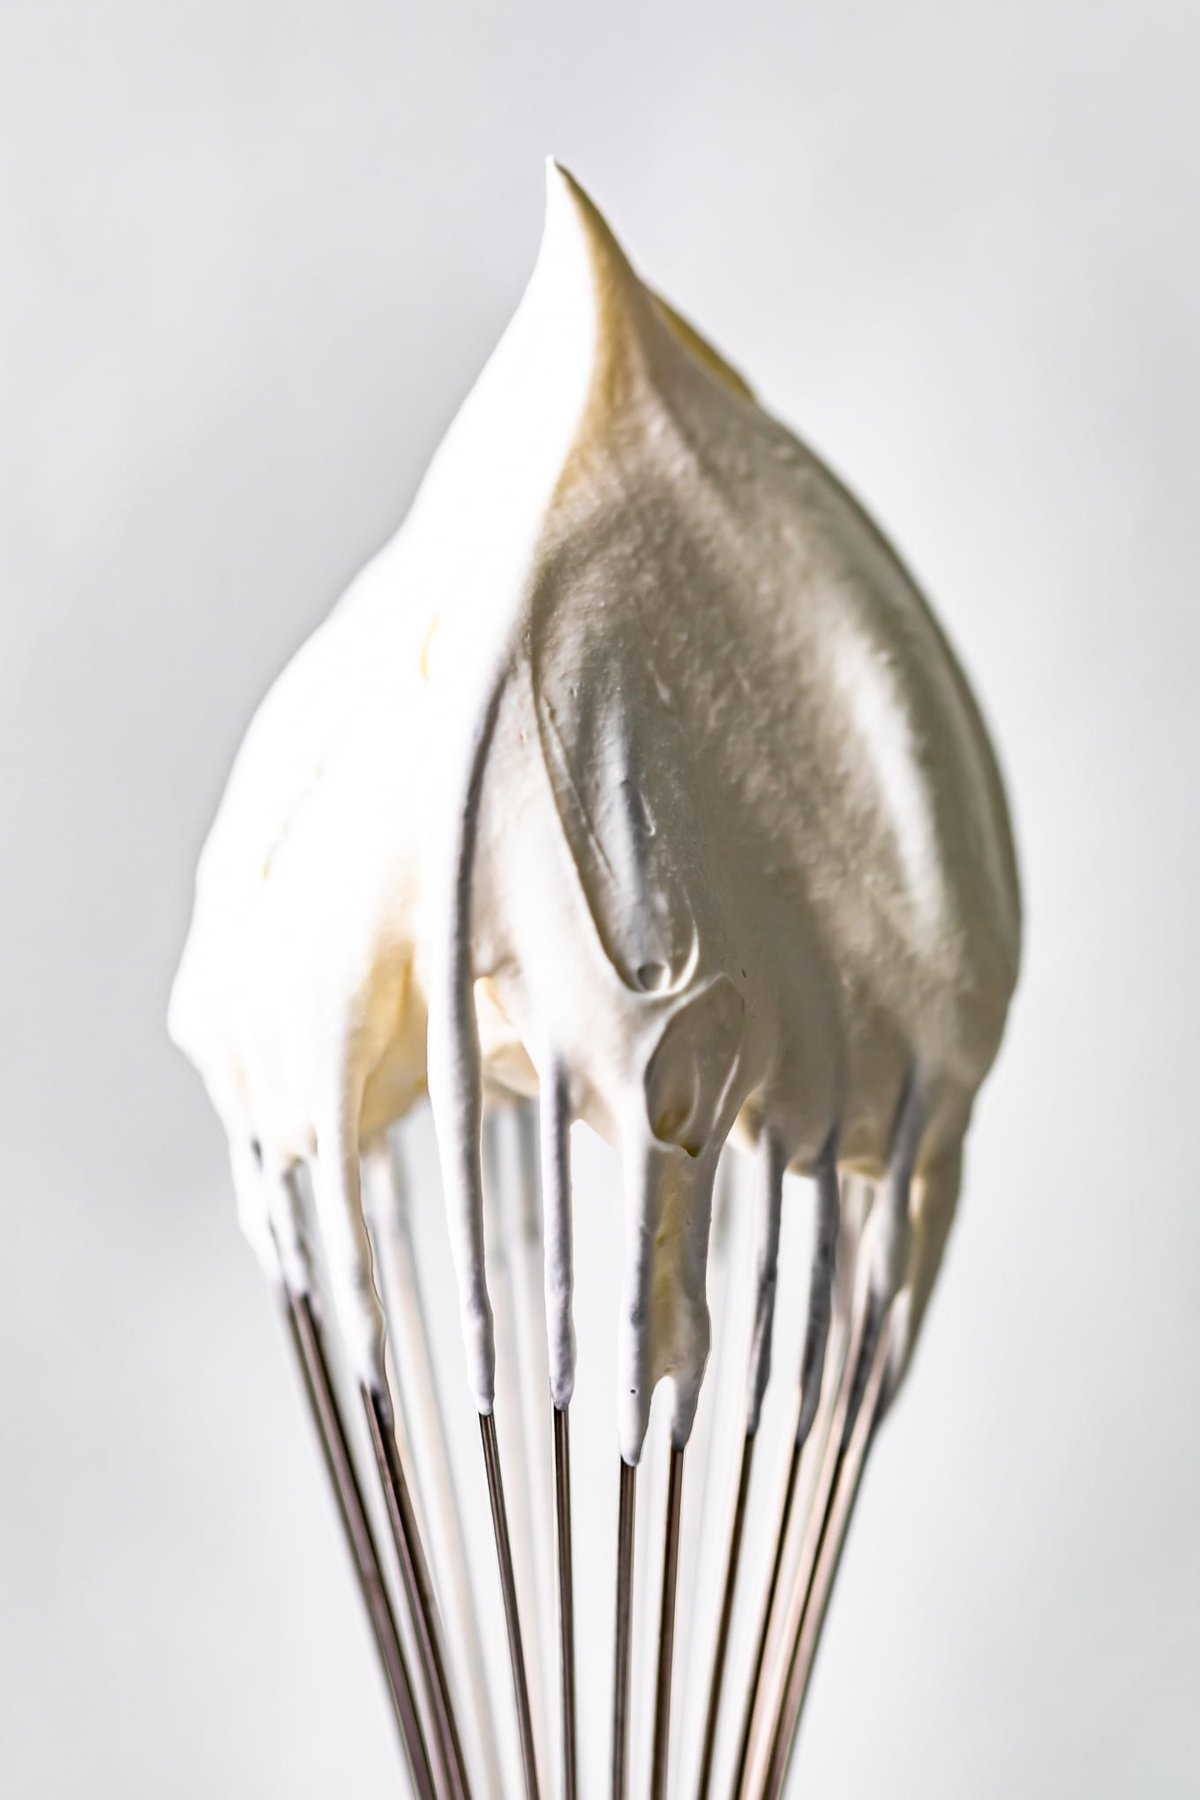 a whisk with whipped cream